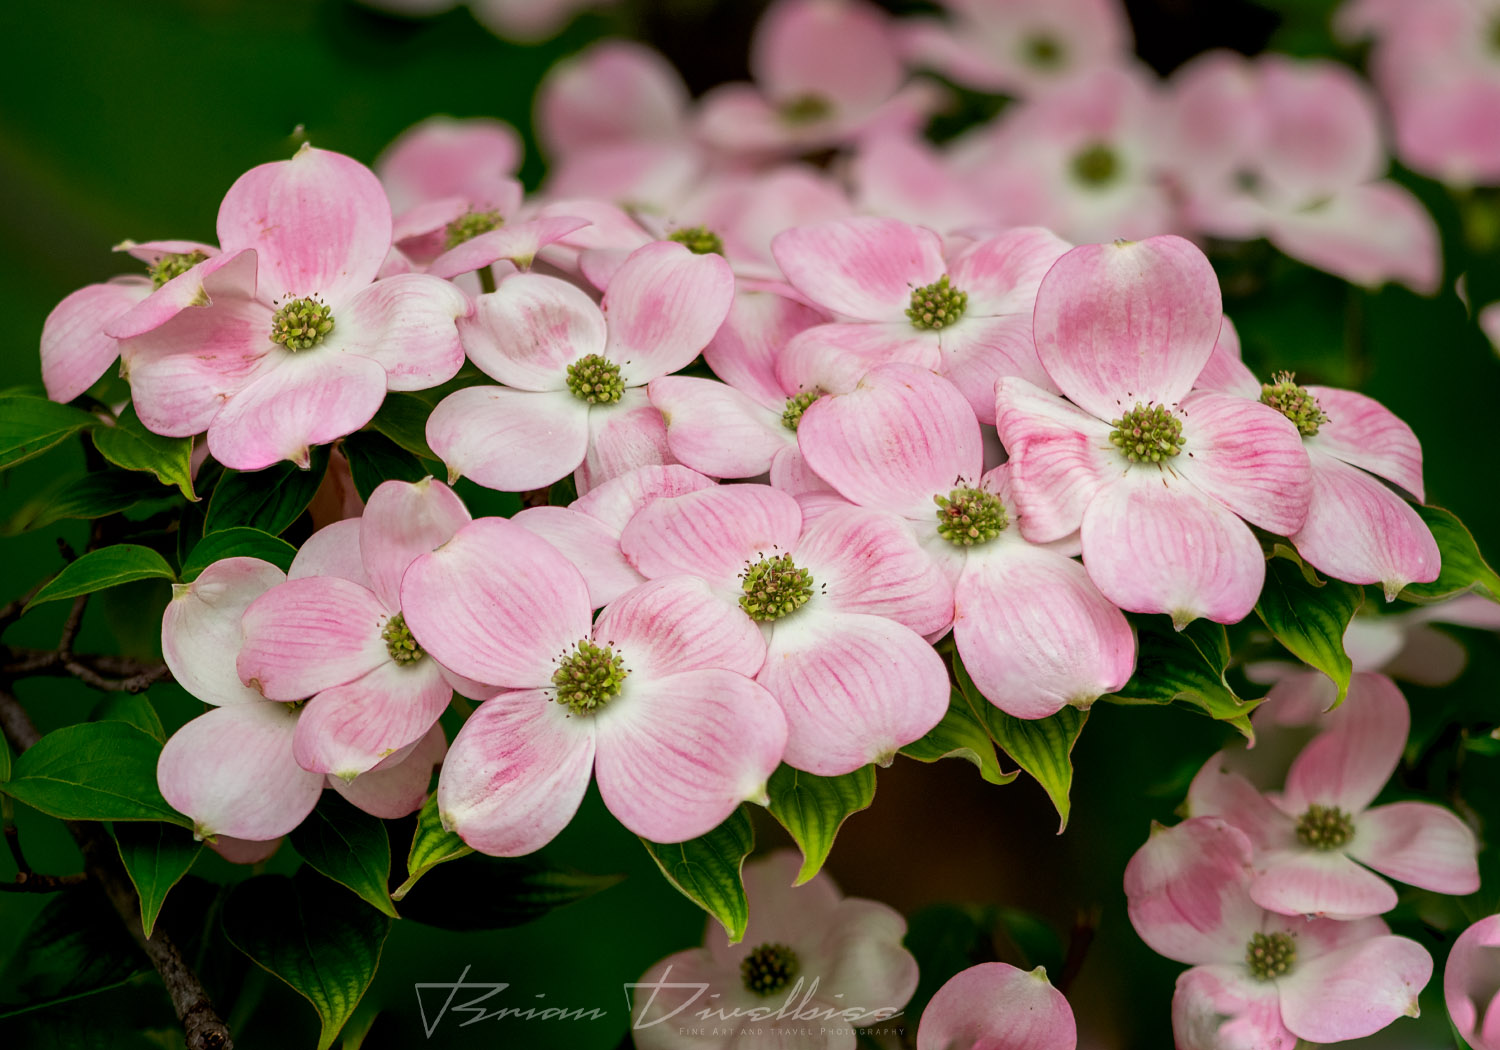 Close-up of tightly clustered pink flowers at Powell Gardens in Missouri.